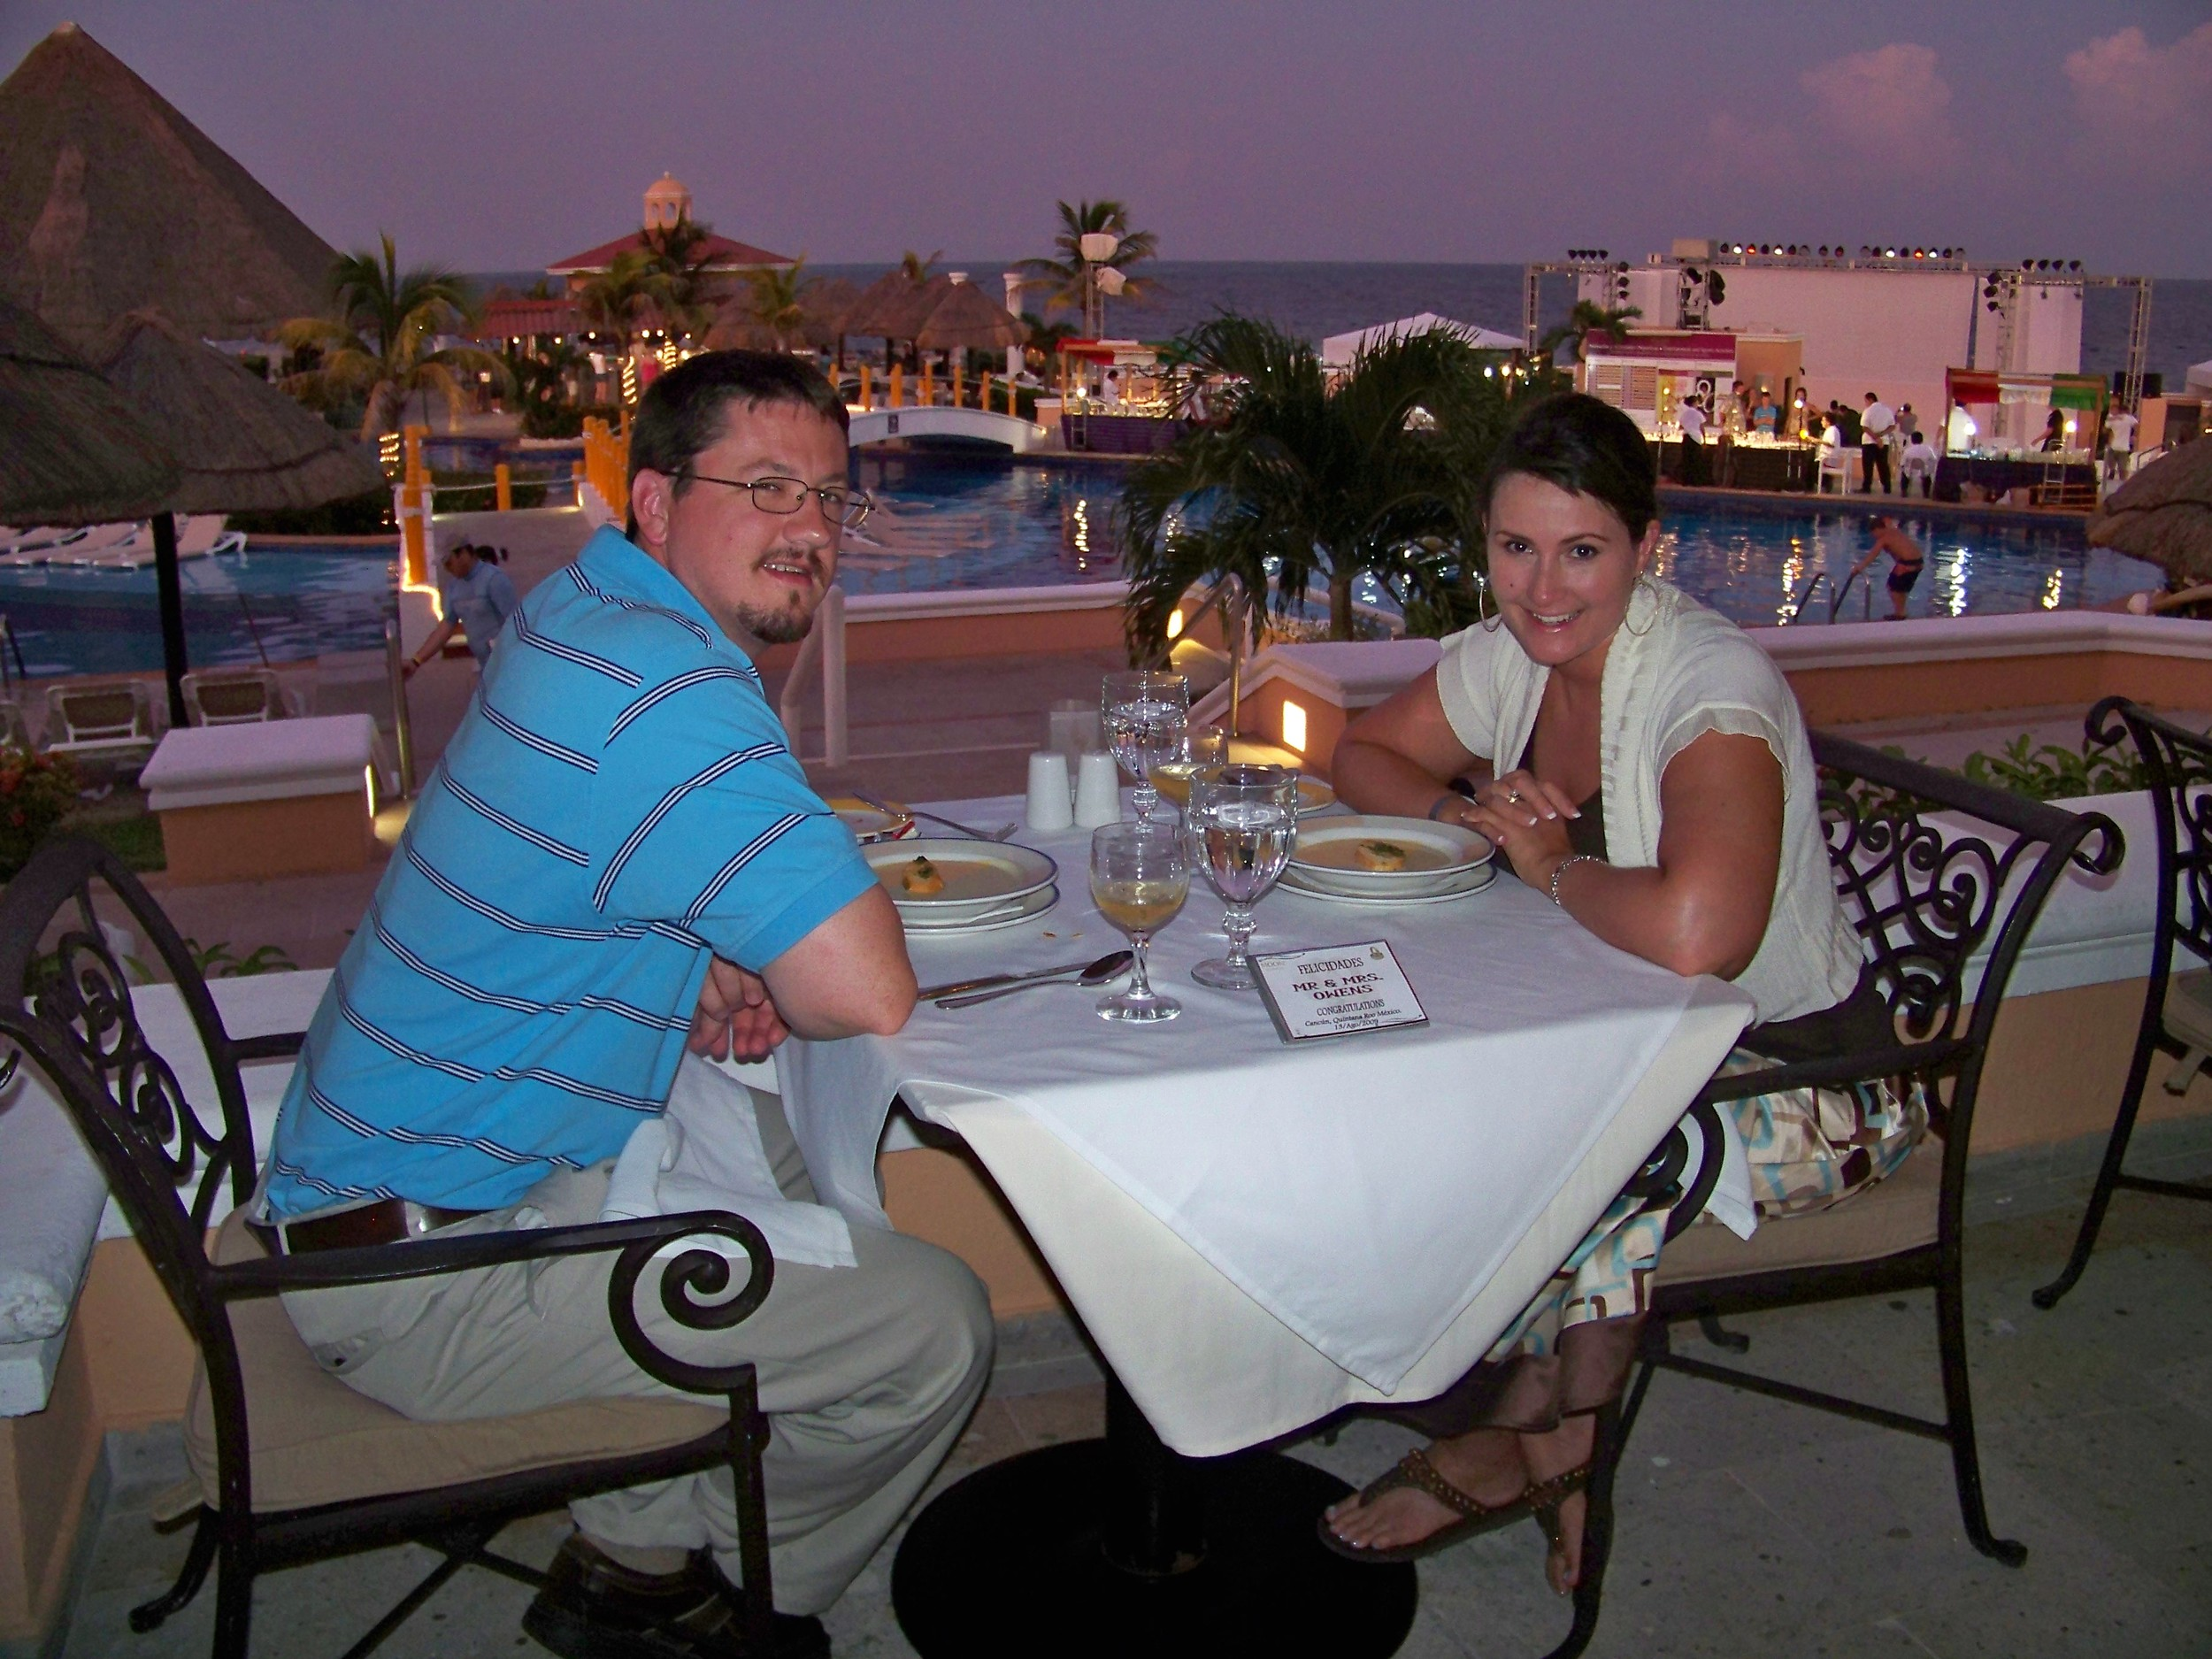 Beach Front Dinner in Cancun, Mexico